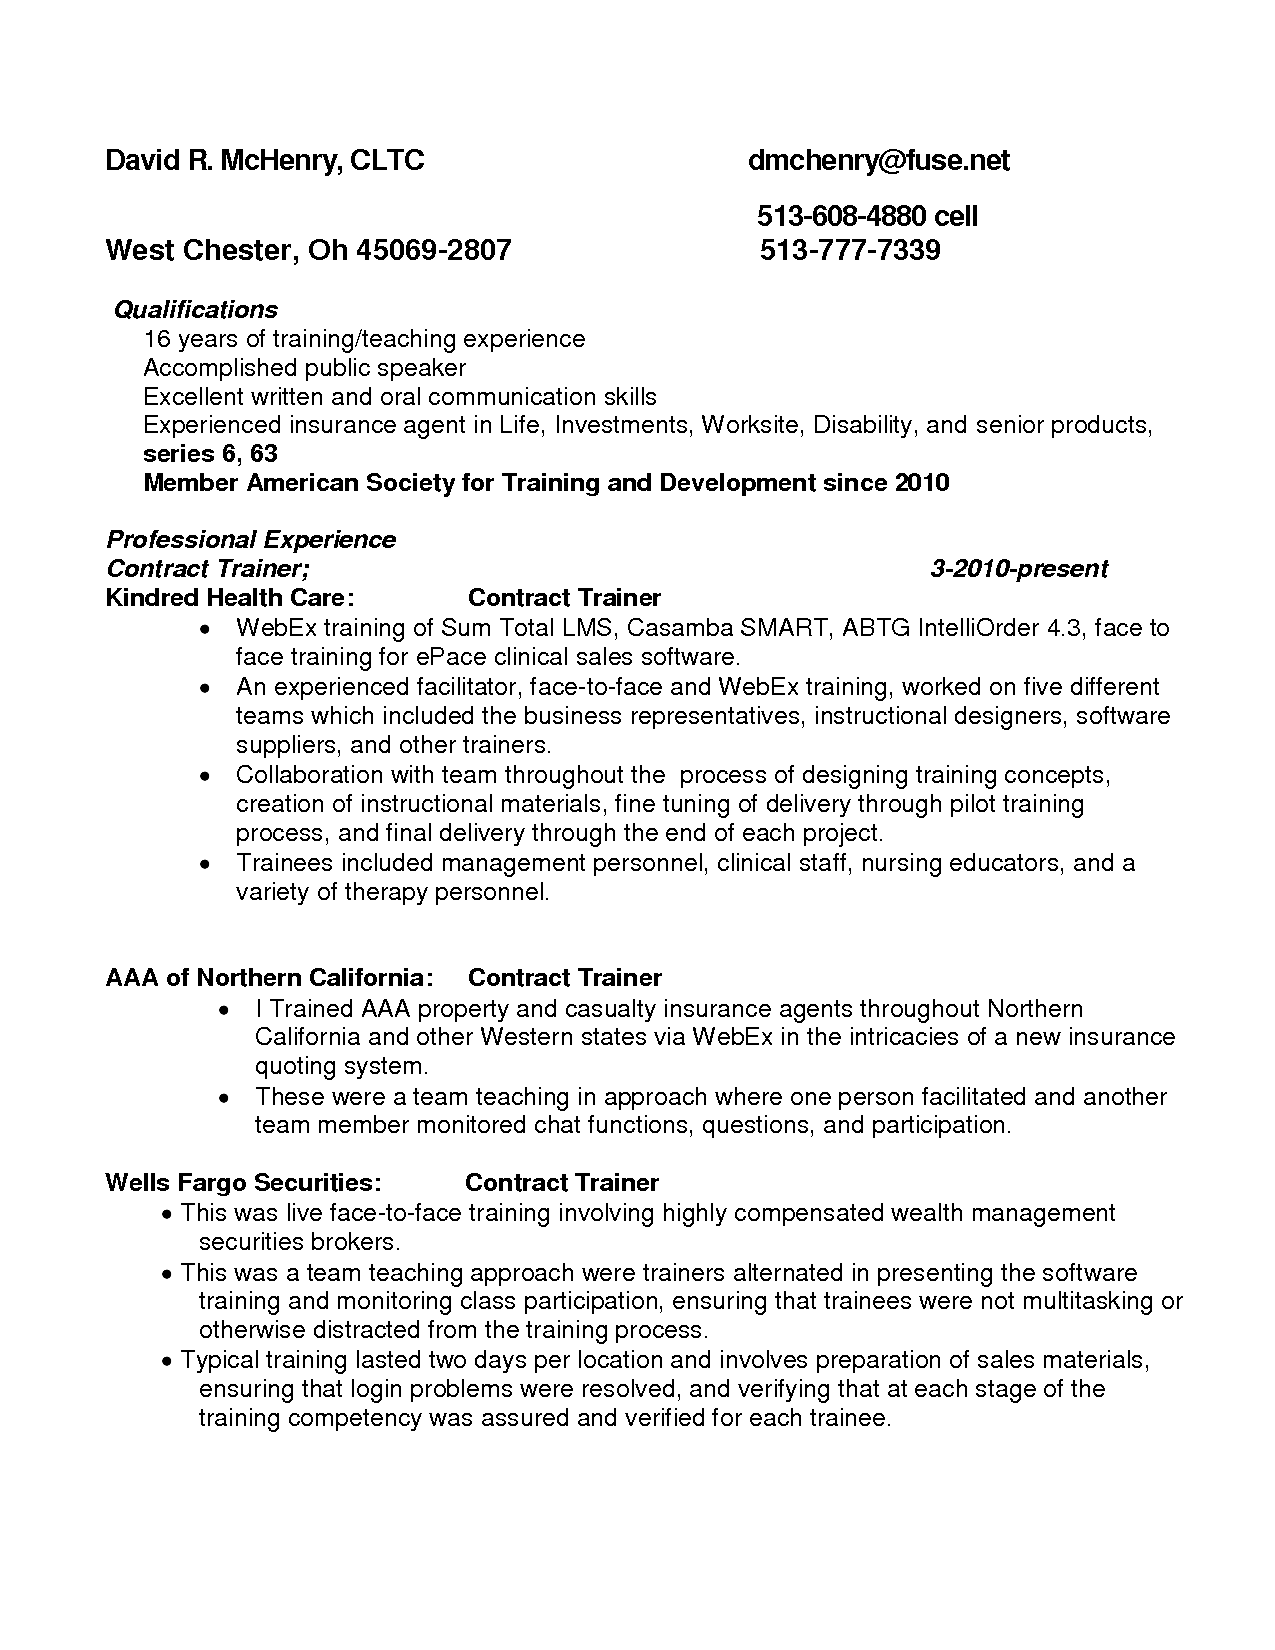 Resume Outline Examples Resume Examples Httpwwwjobresumewebsite Also Insurance Agent Free